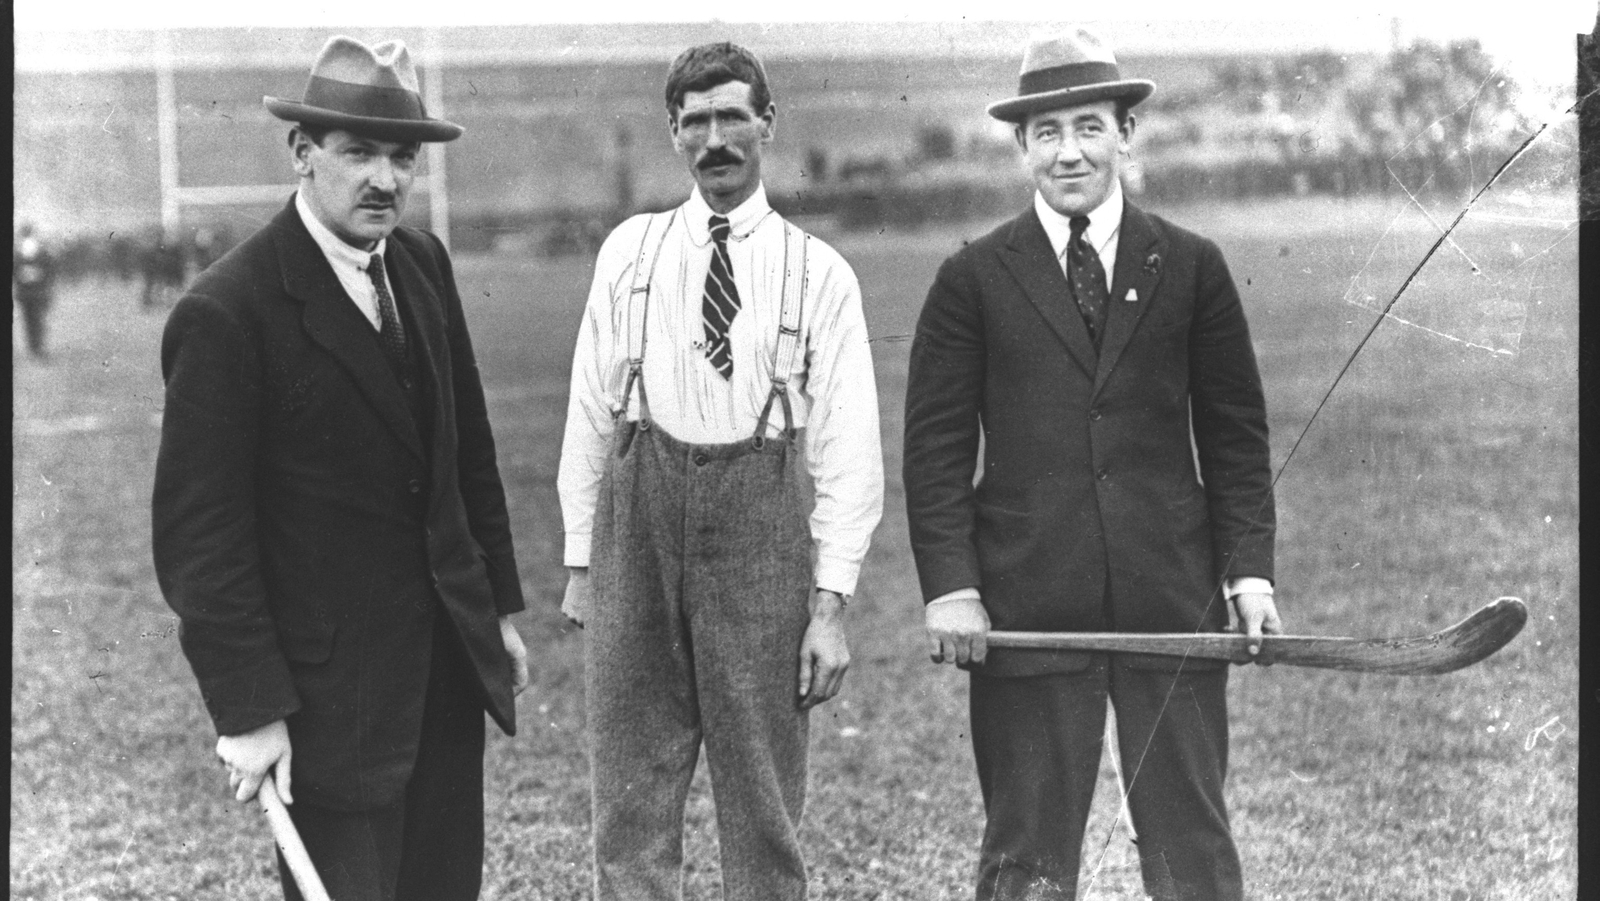 Image - Michael Collins, Mr Dunphy and Harry Boland, at a GAA hurling match at Croke Park, Dublin 1921. Michael Collins and Harry Boland are both holding hurleys. Photo: RTE Photographic Archive